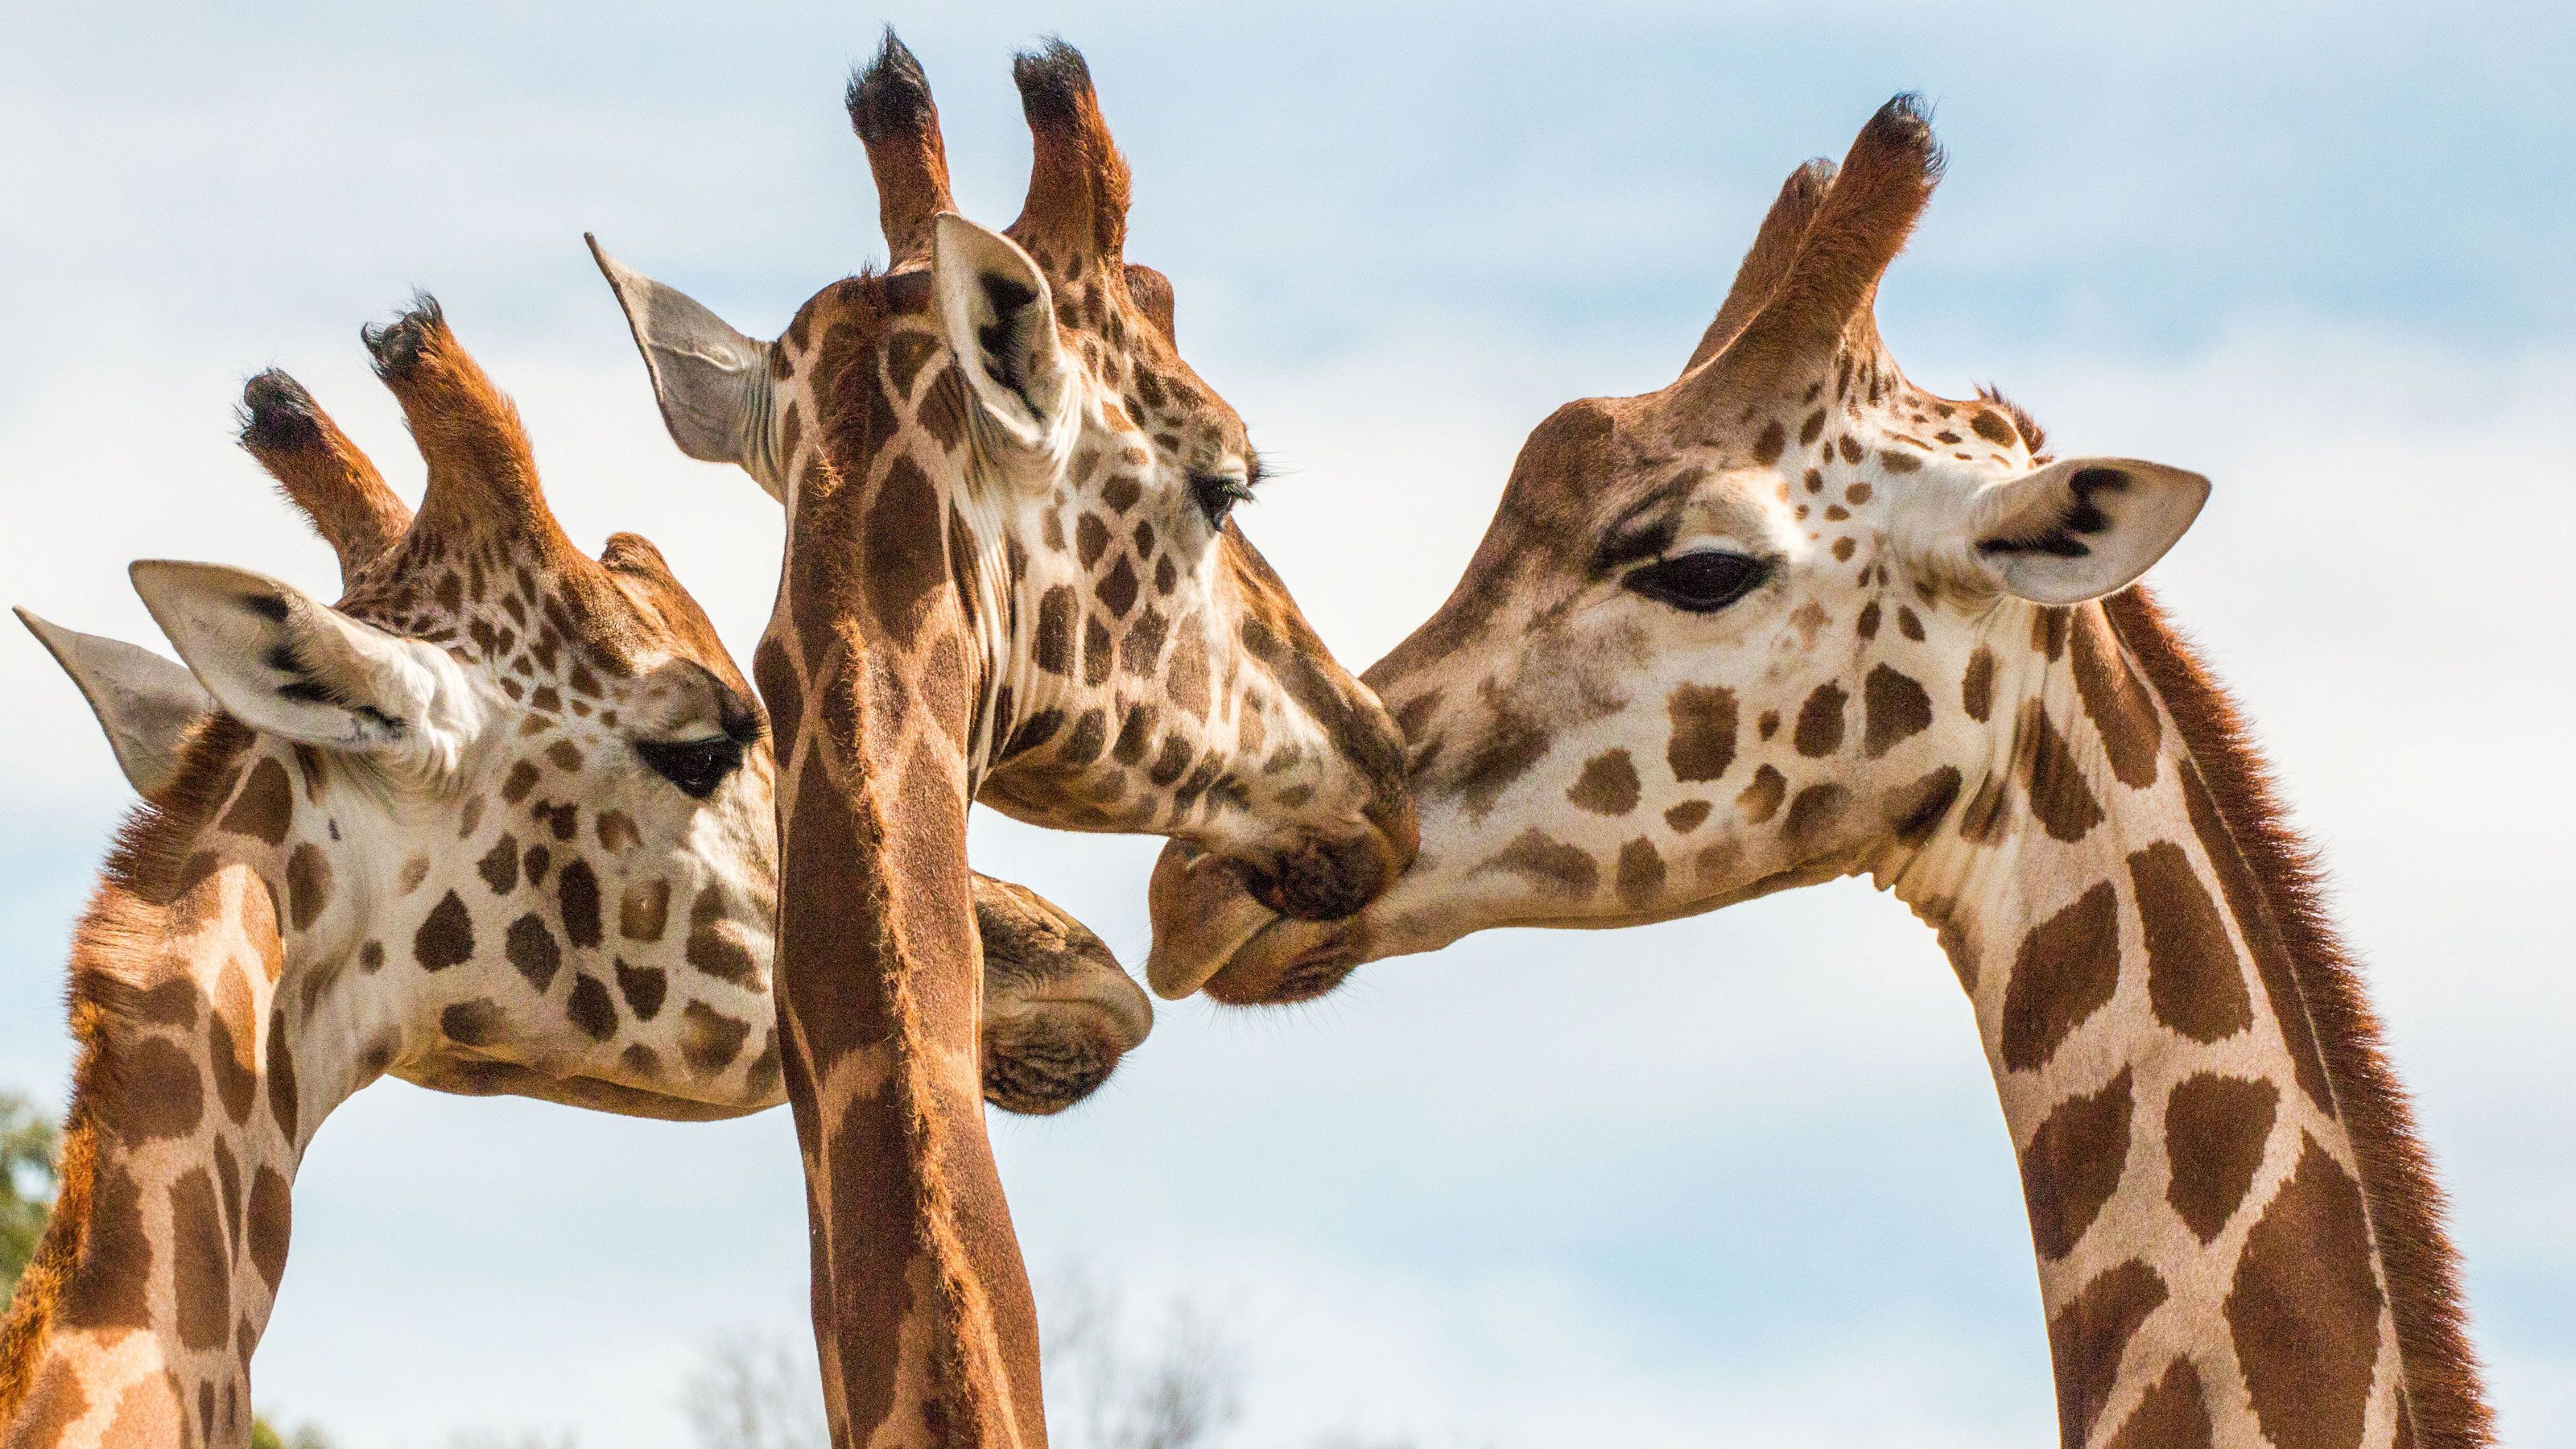 Giraffes grooming at the Werribee Open Range Zoo in Australia